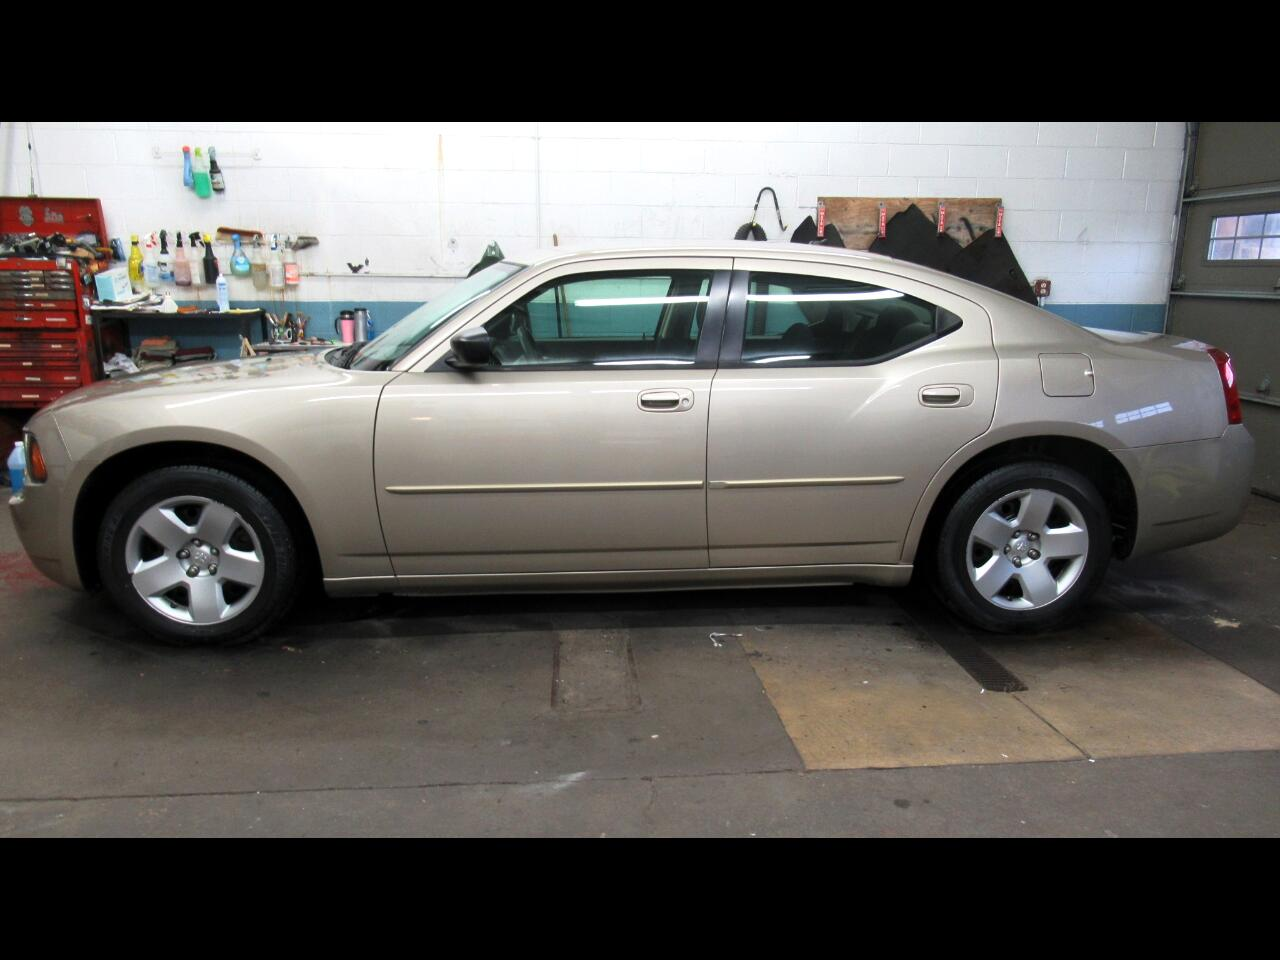 Dodge Charger 4dr Sdn SE RWD 2008